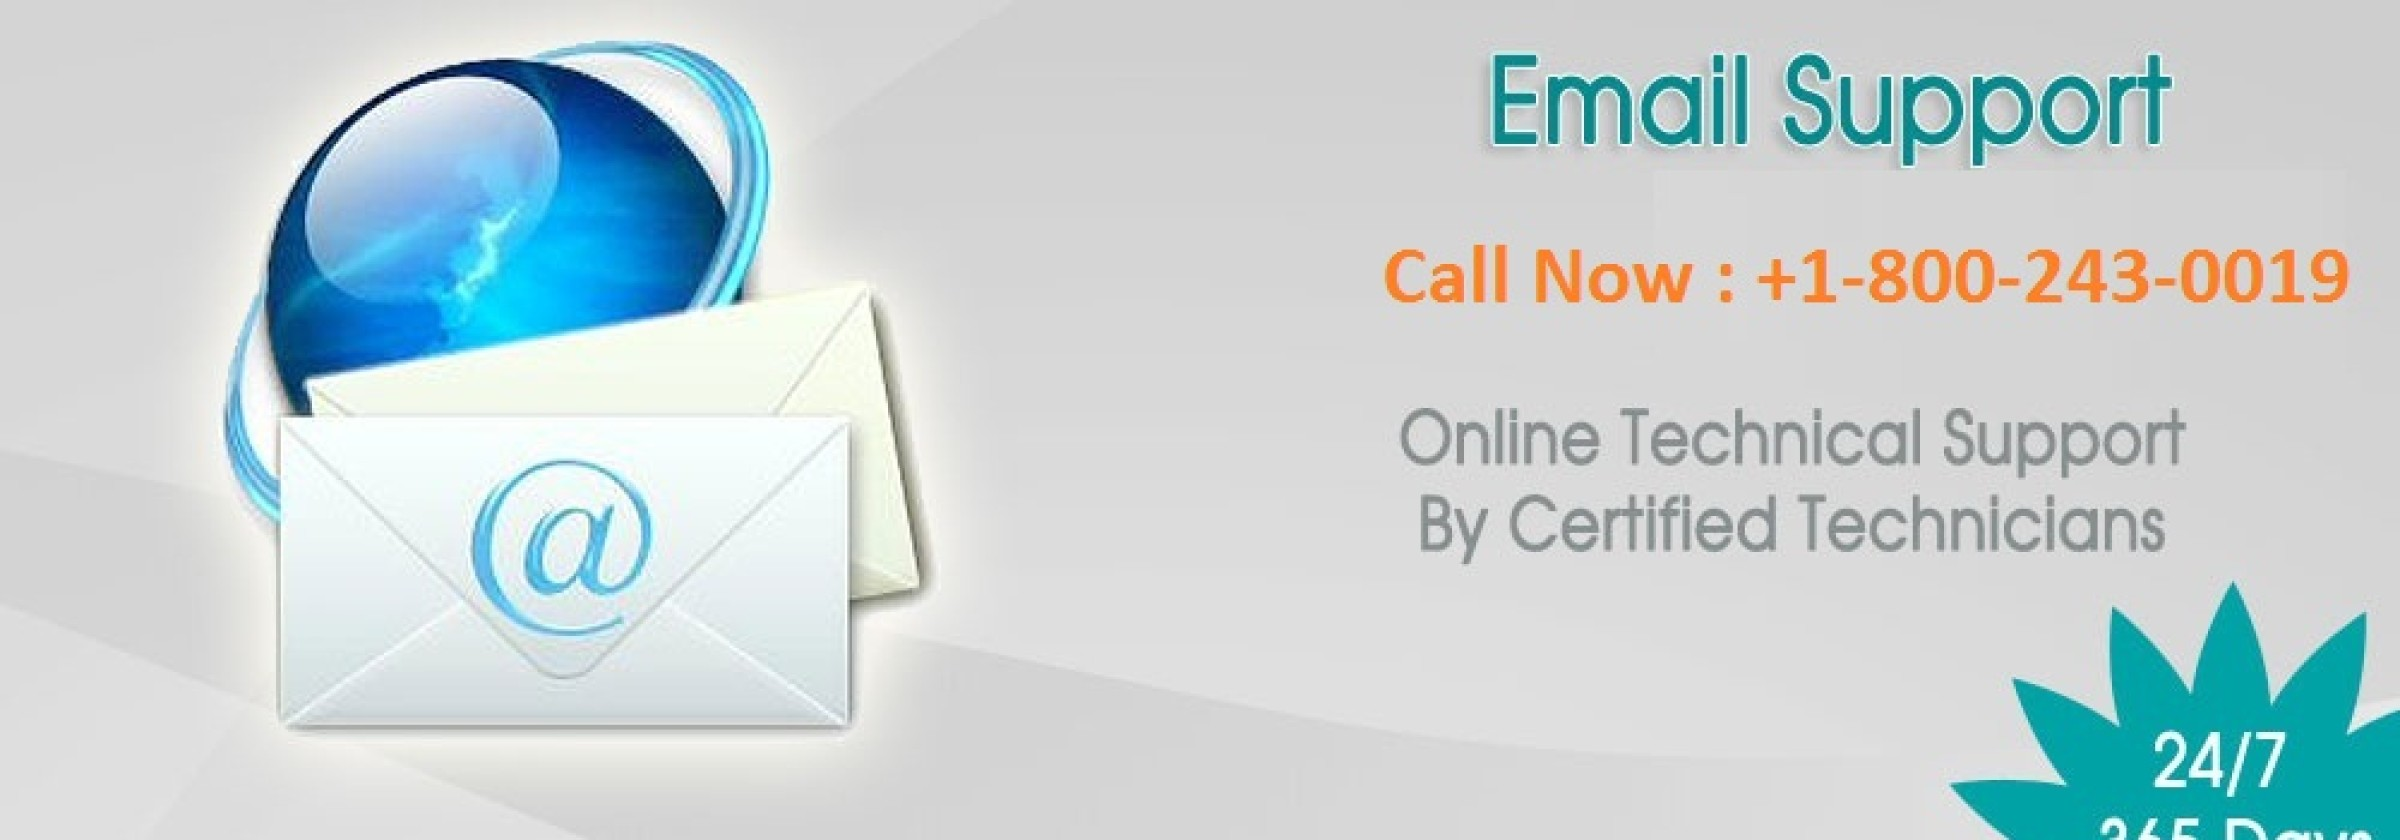 Roadrunner web mail hawaii - Email Support Service